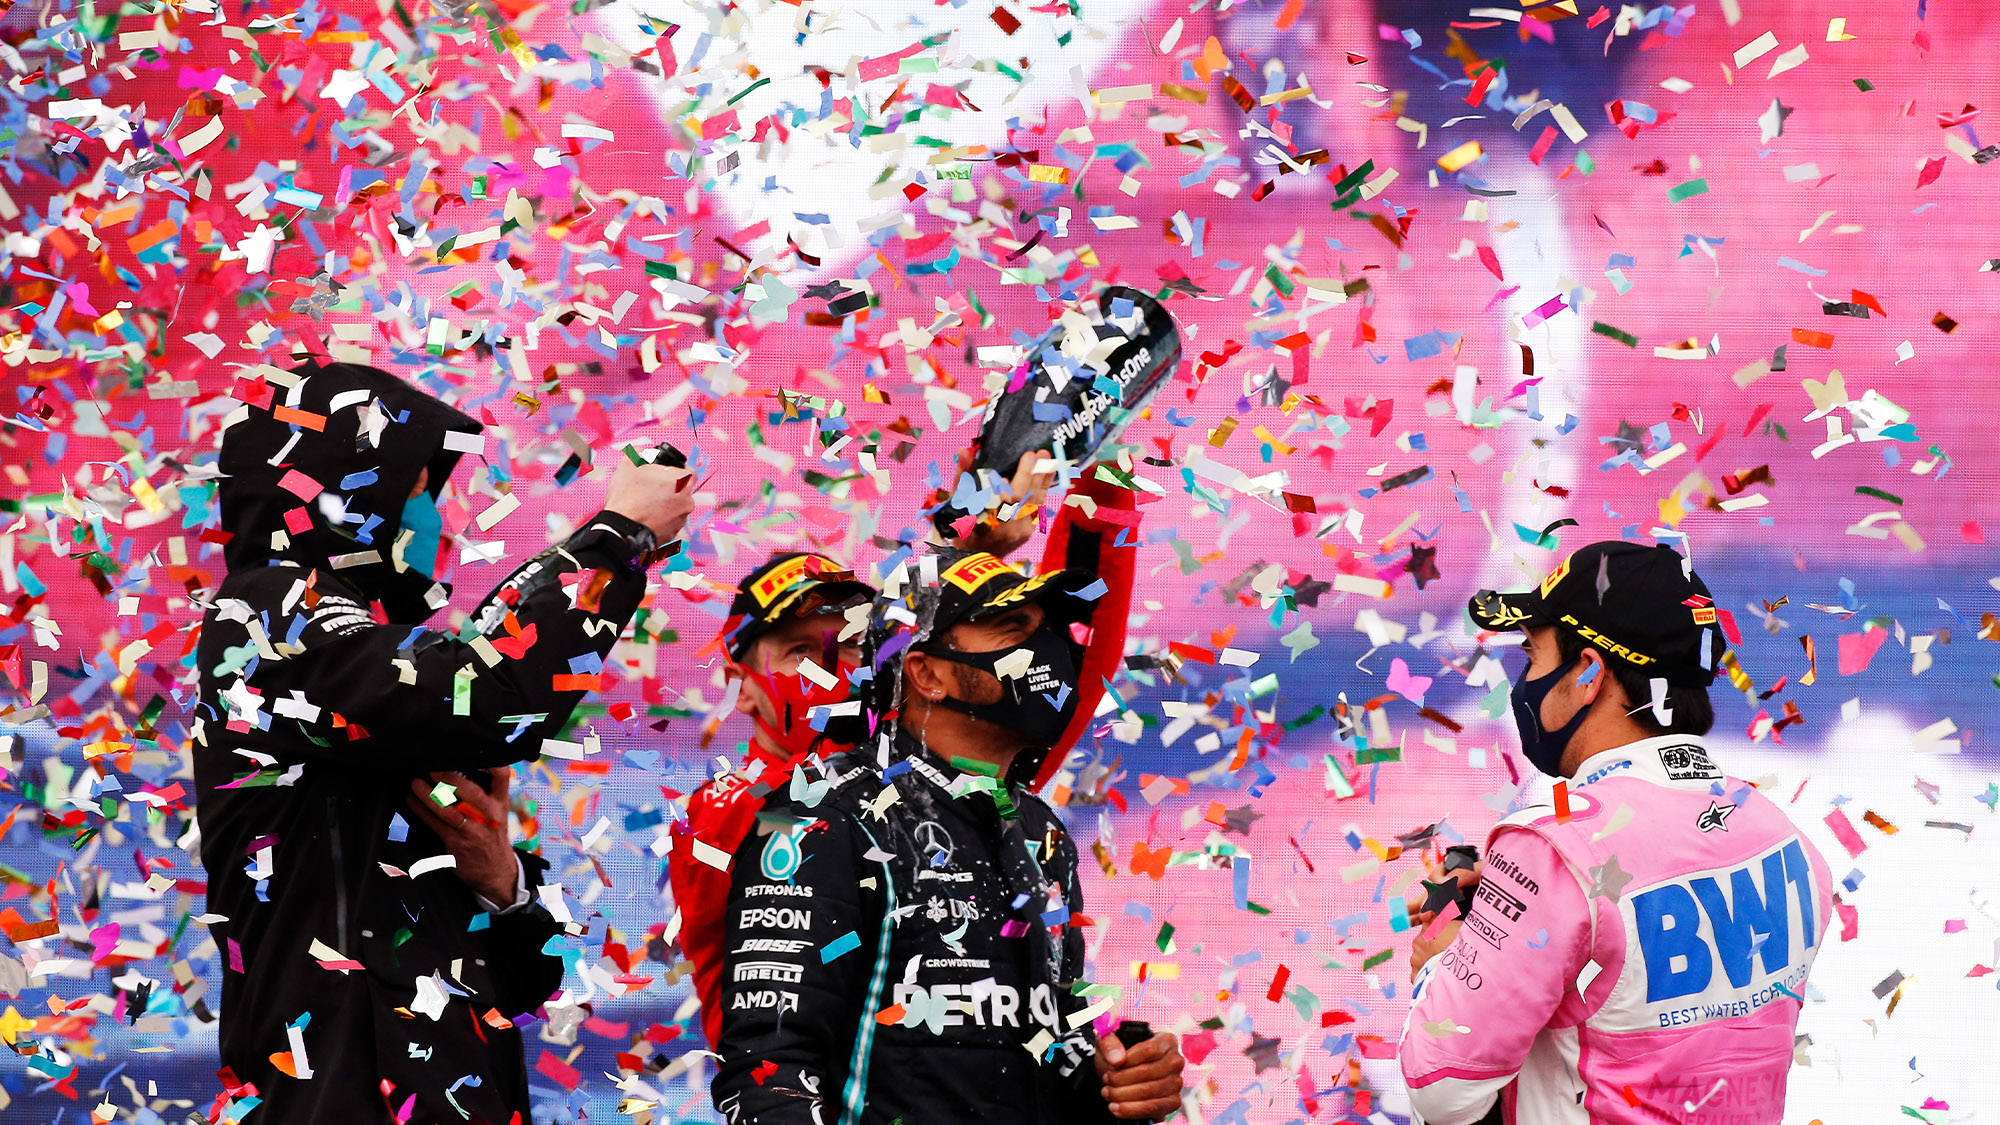 How it happened: Hamilton's stunning 2020 Turkish Grand Prix win